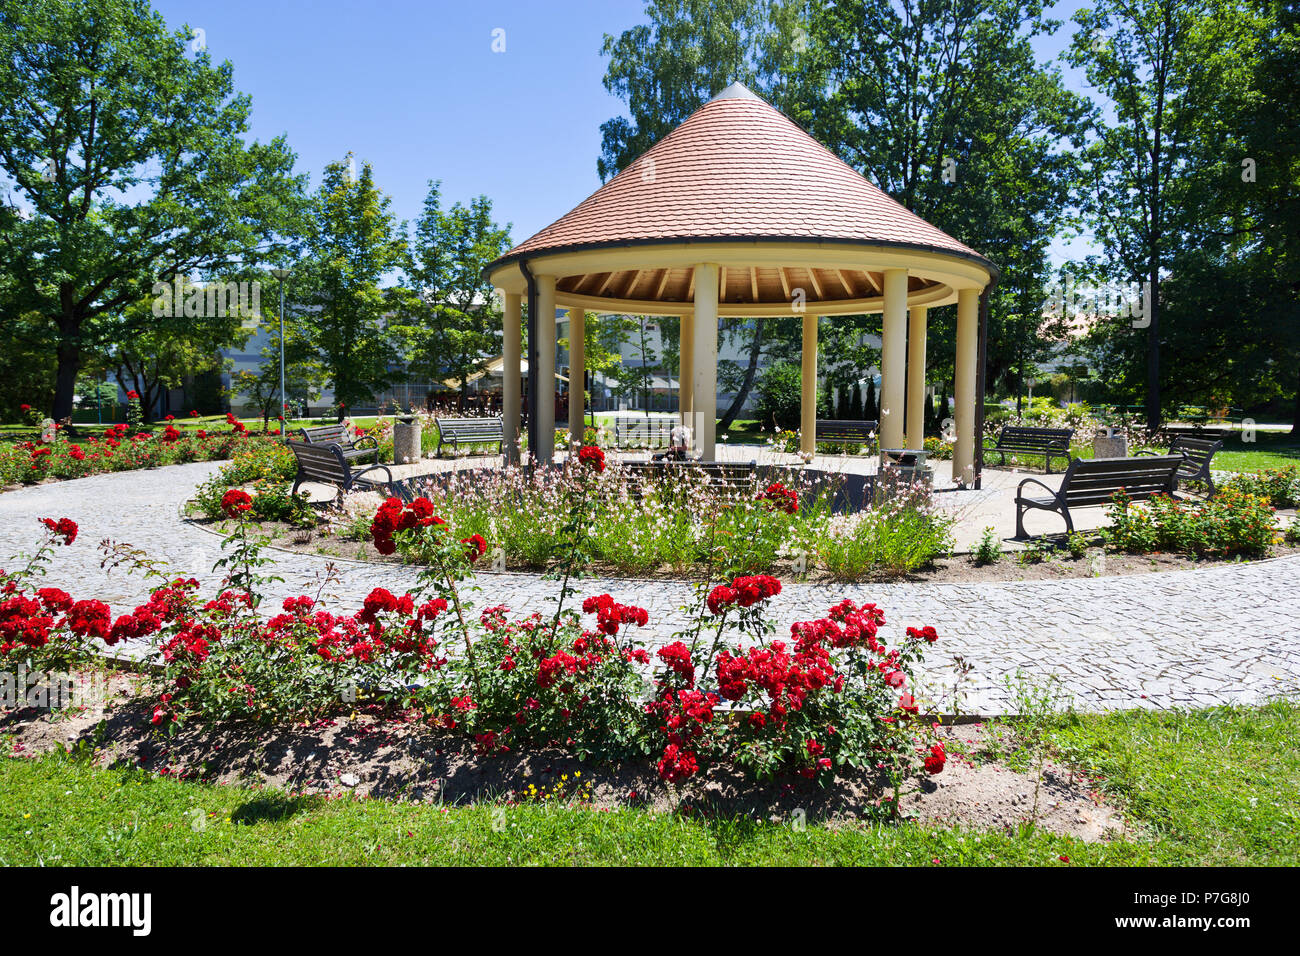 Bertiny lazne (slatinne a karbonove lazne z 1883, Tylova ulice, Trebon, Ceska republika / Berta spa resort, town Trebon, South Bohemia, Czech republic Stock Photo